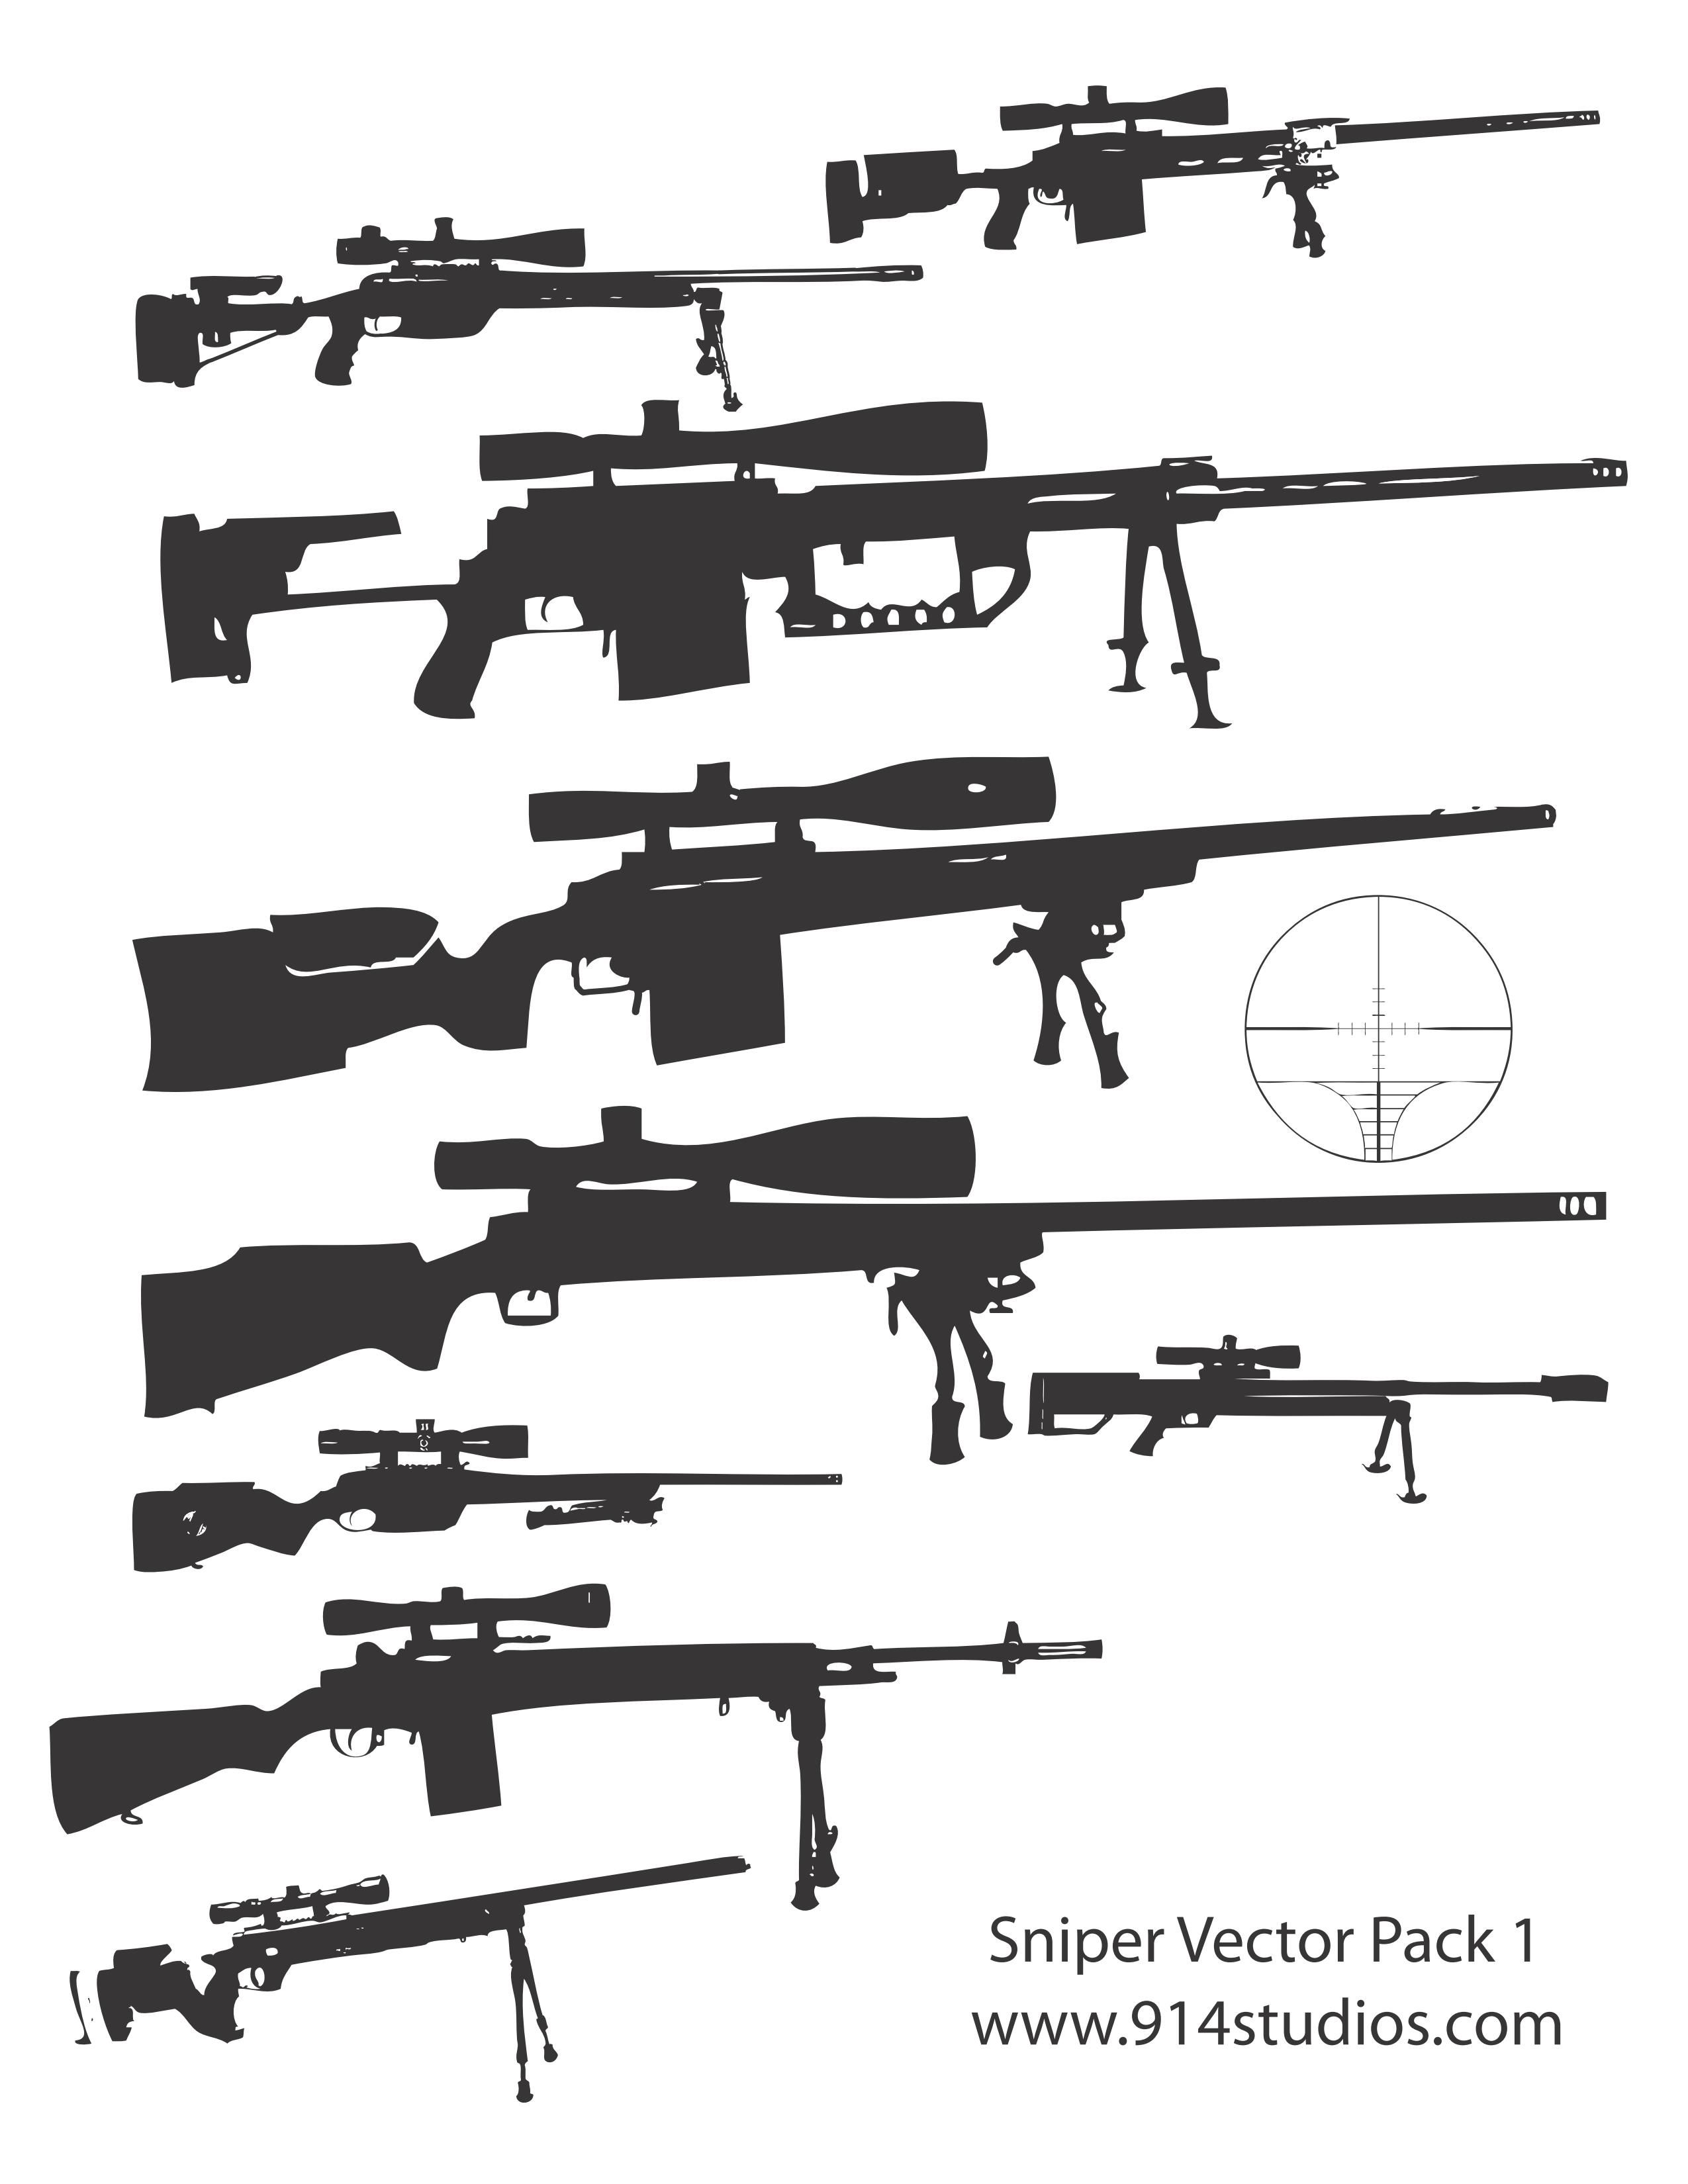 Gun Vector Sniper Rifle Pack - Silhouettes Vector | Pinterest